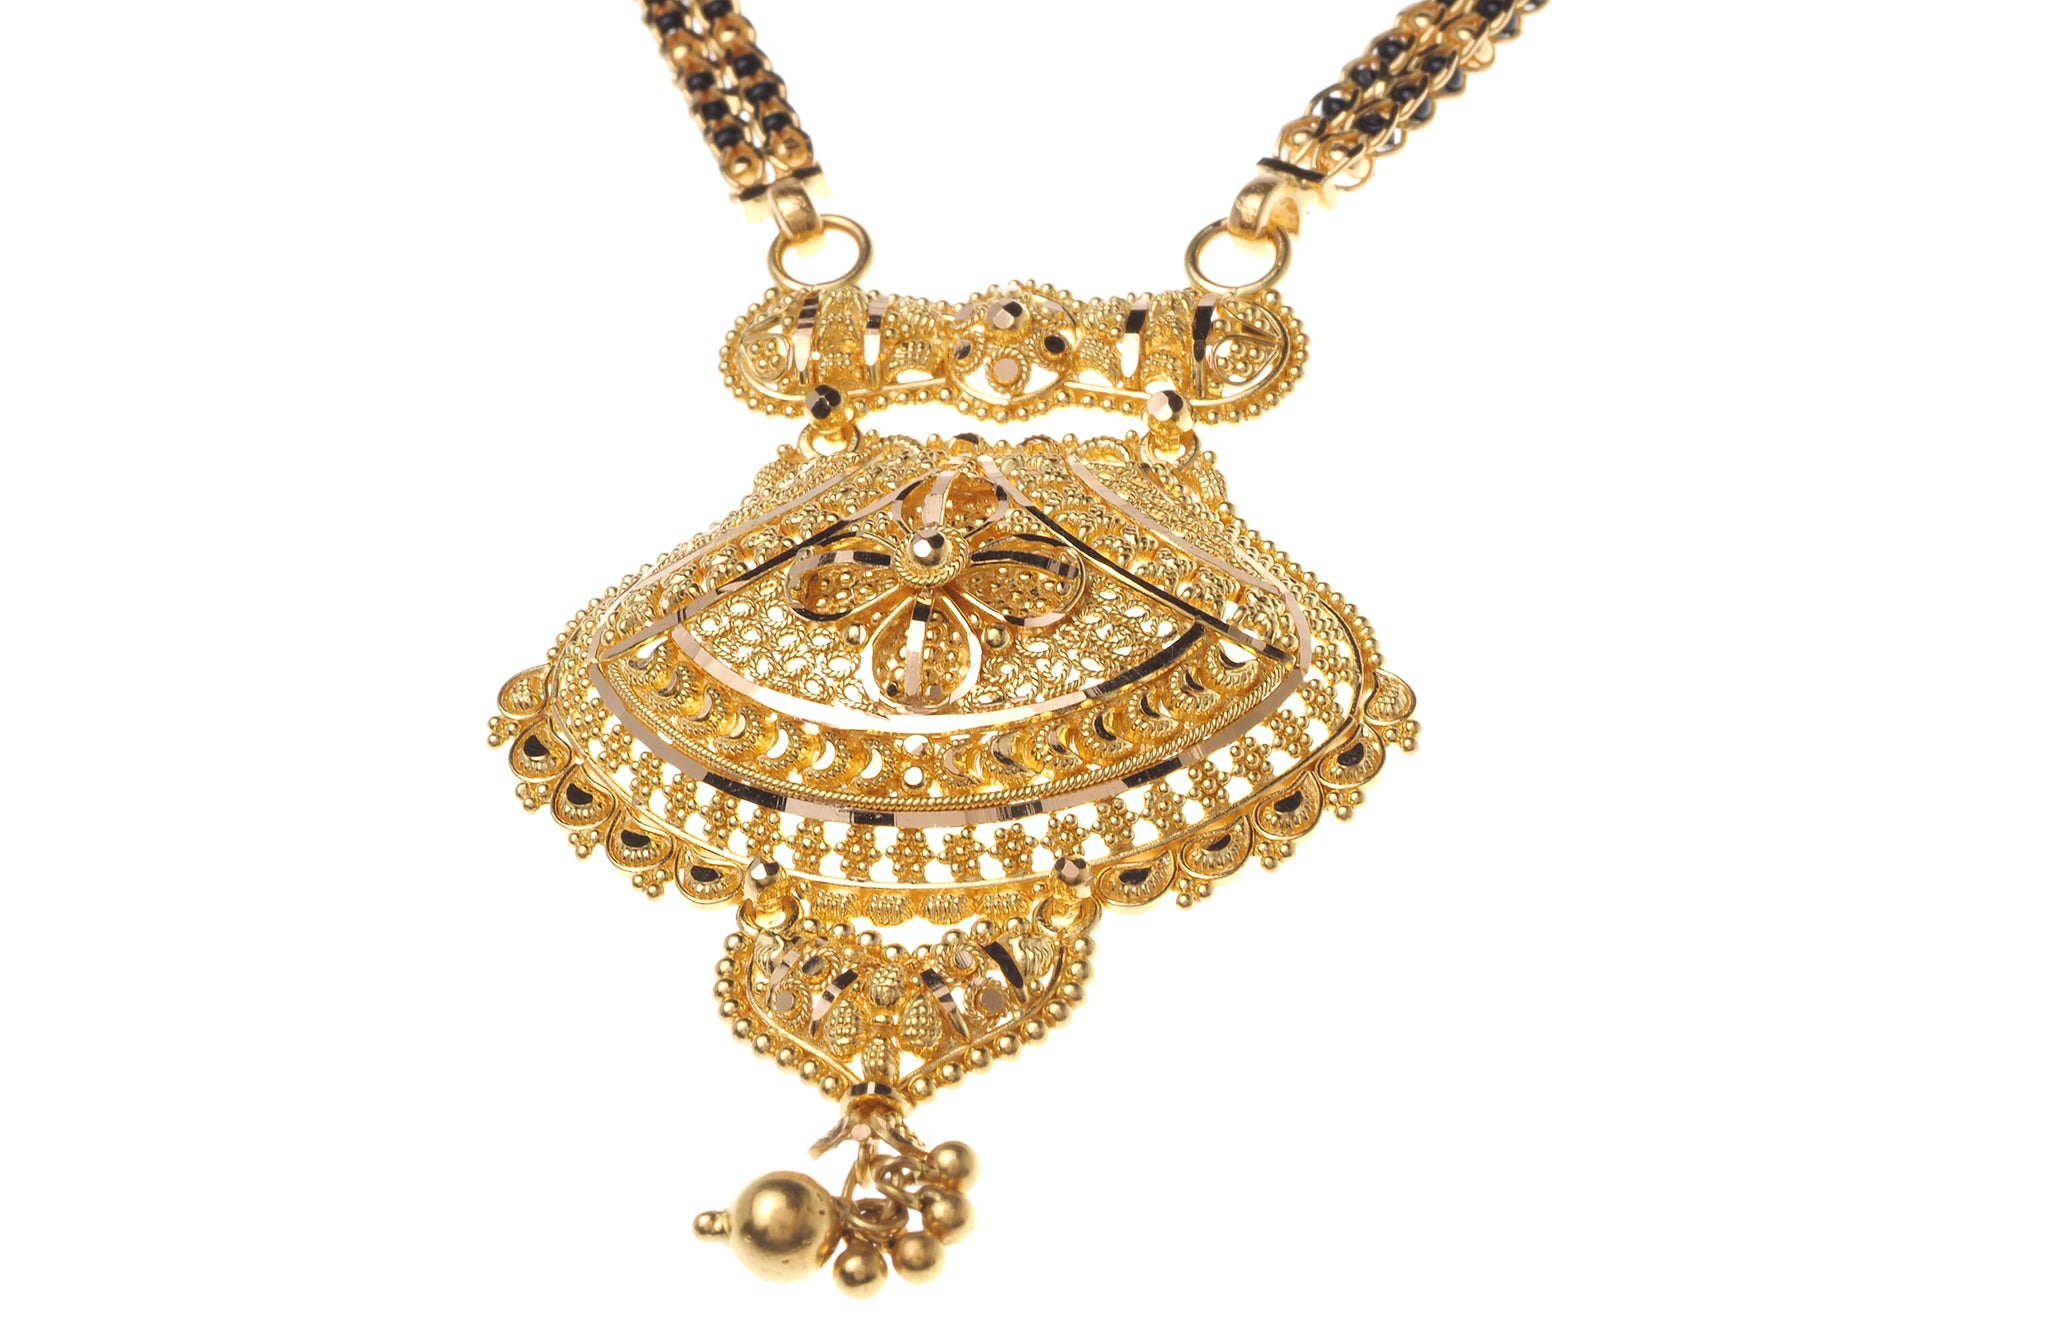 22ct Gold Mangal Sutra Necklace with hook clasp (MS-6467)